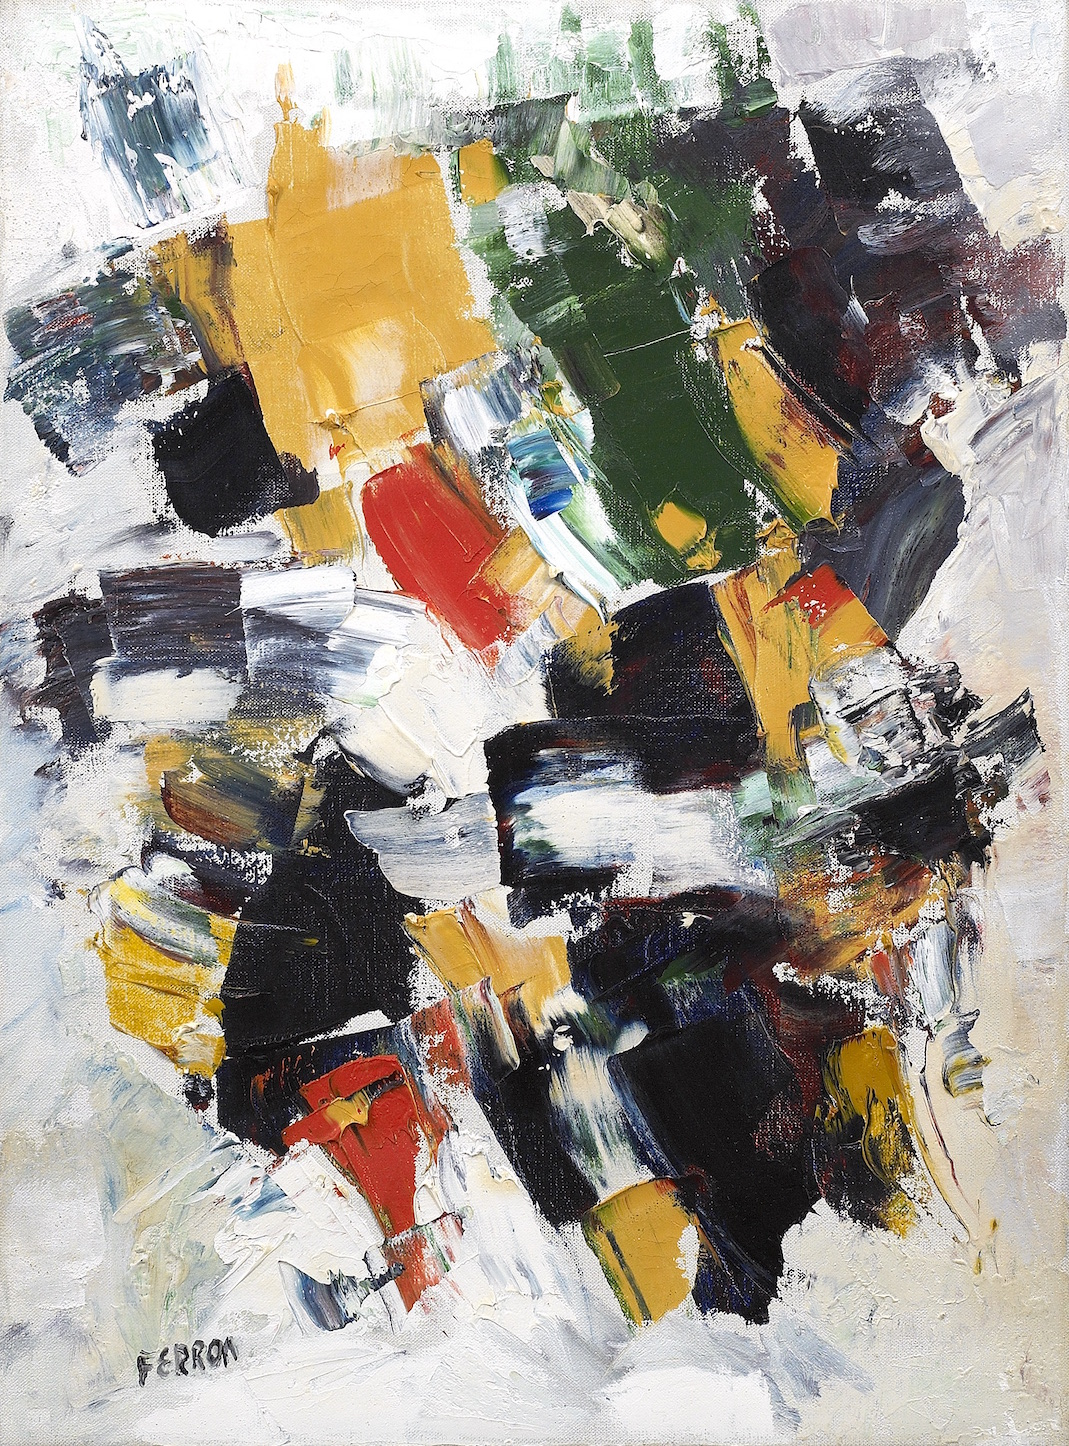 Untitled, 1961,   Oil on canvas, 21 1/4 x 15 3/4 inches